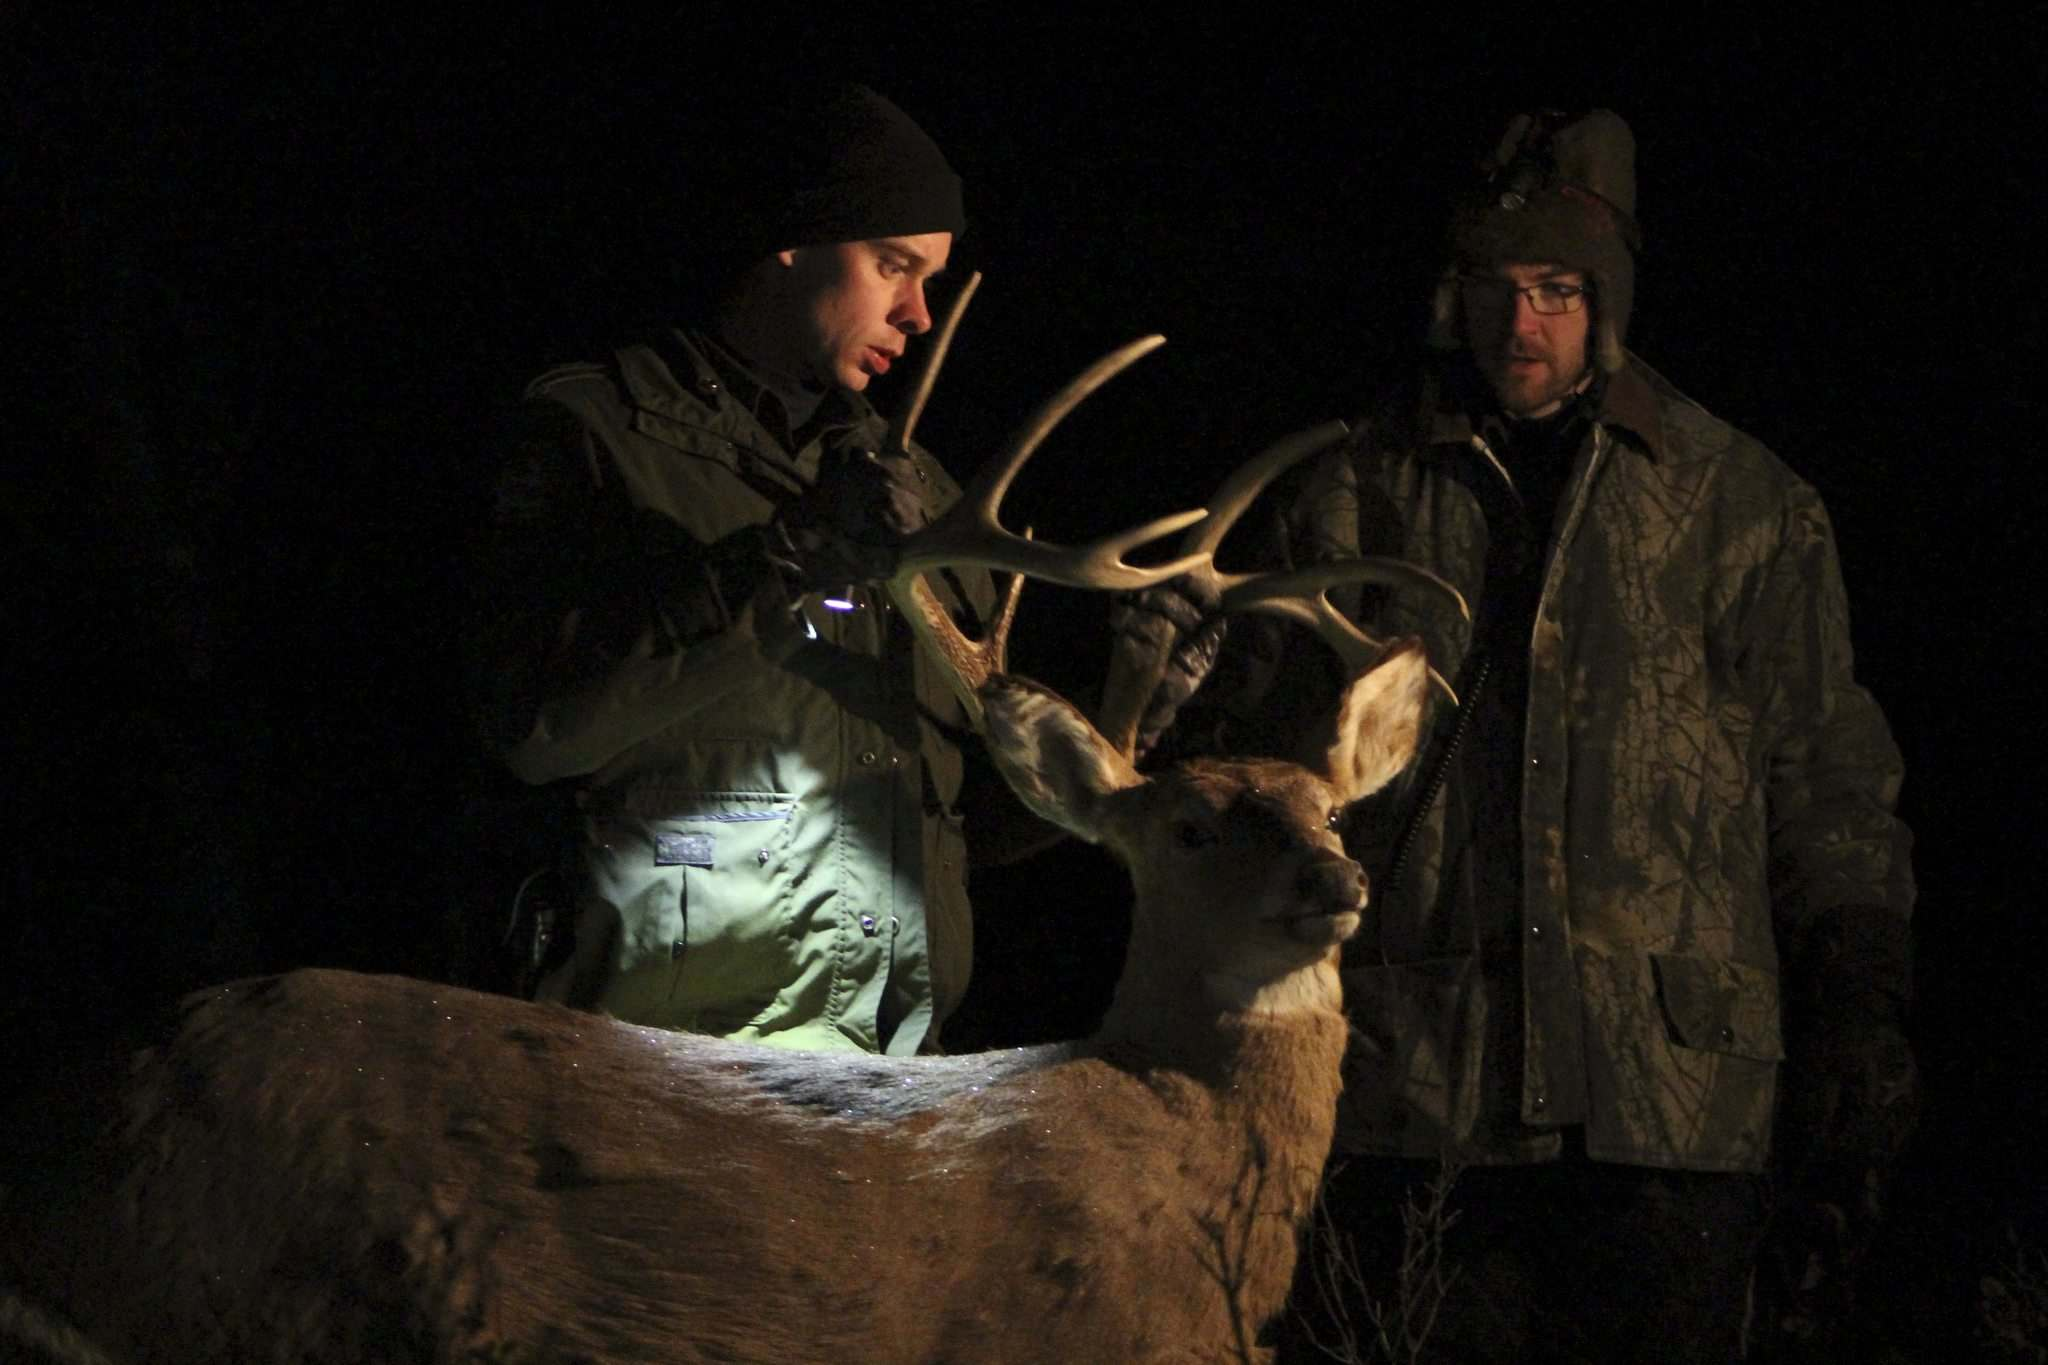 <p>Conservation officers Ian Van Nest (left) and Dawson Keen remove a mechanical deer decoy from the bush at the end of their operation to nab illegal night hunters.</p>